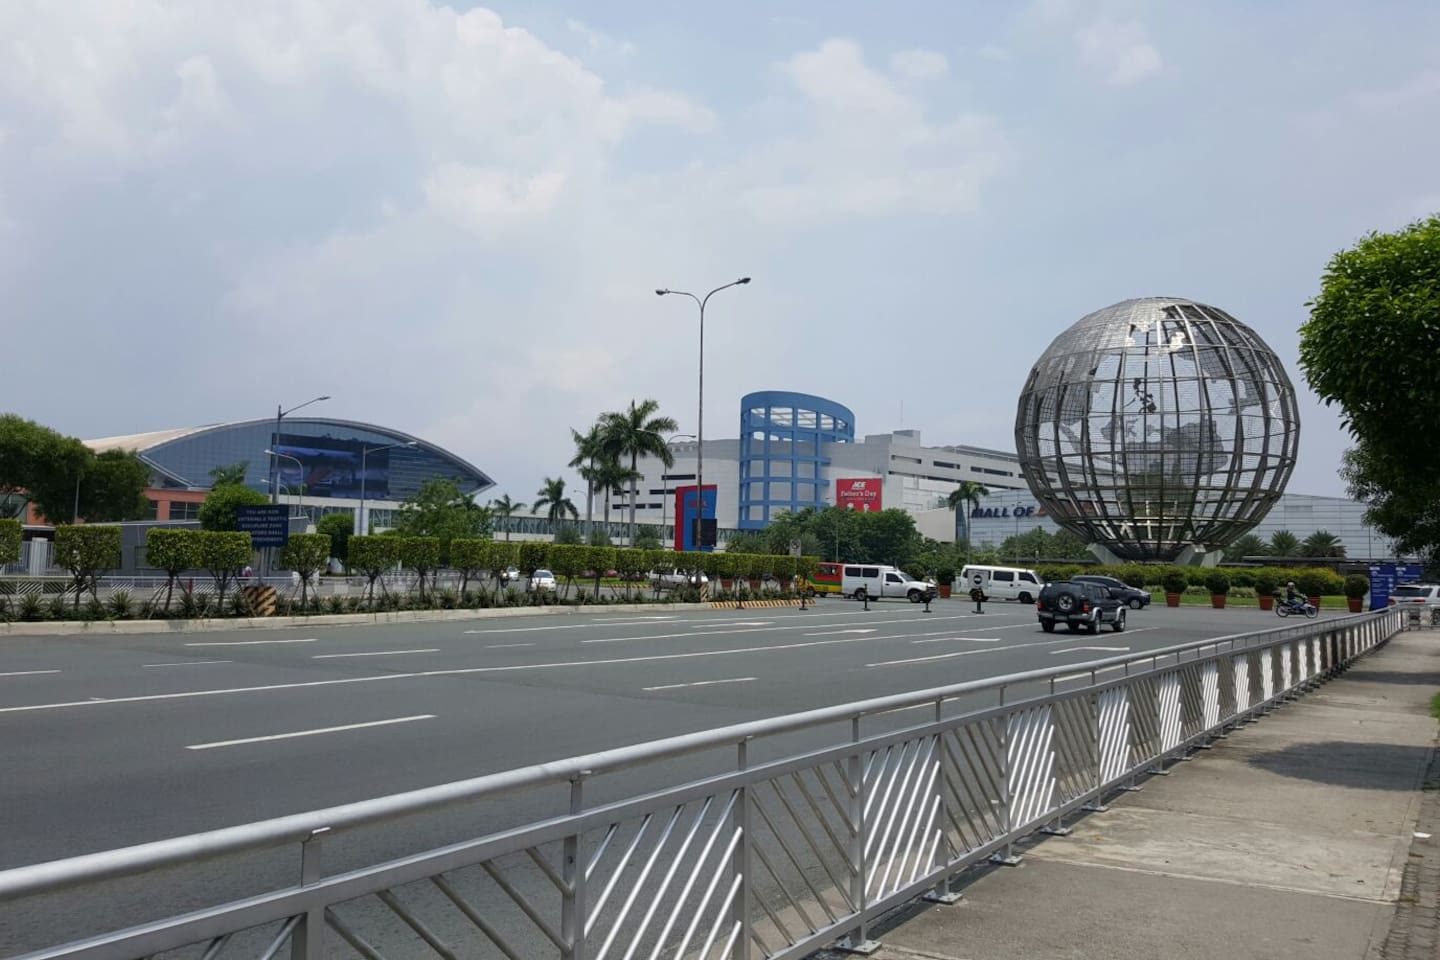 Mall of Asia view from front of tower